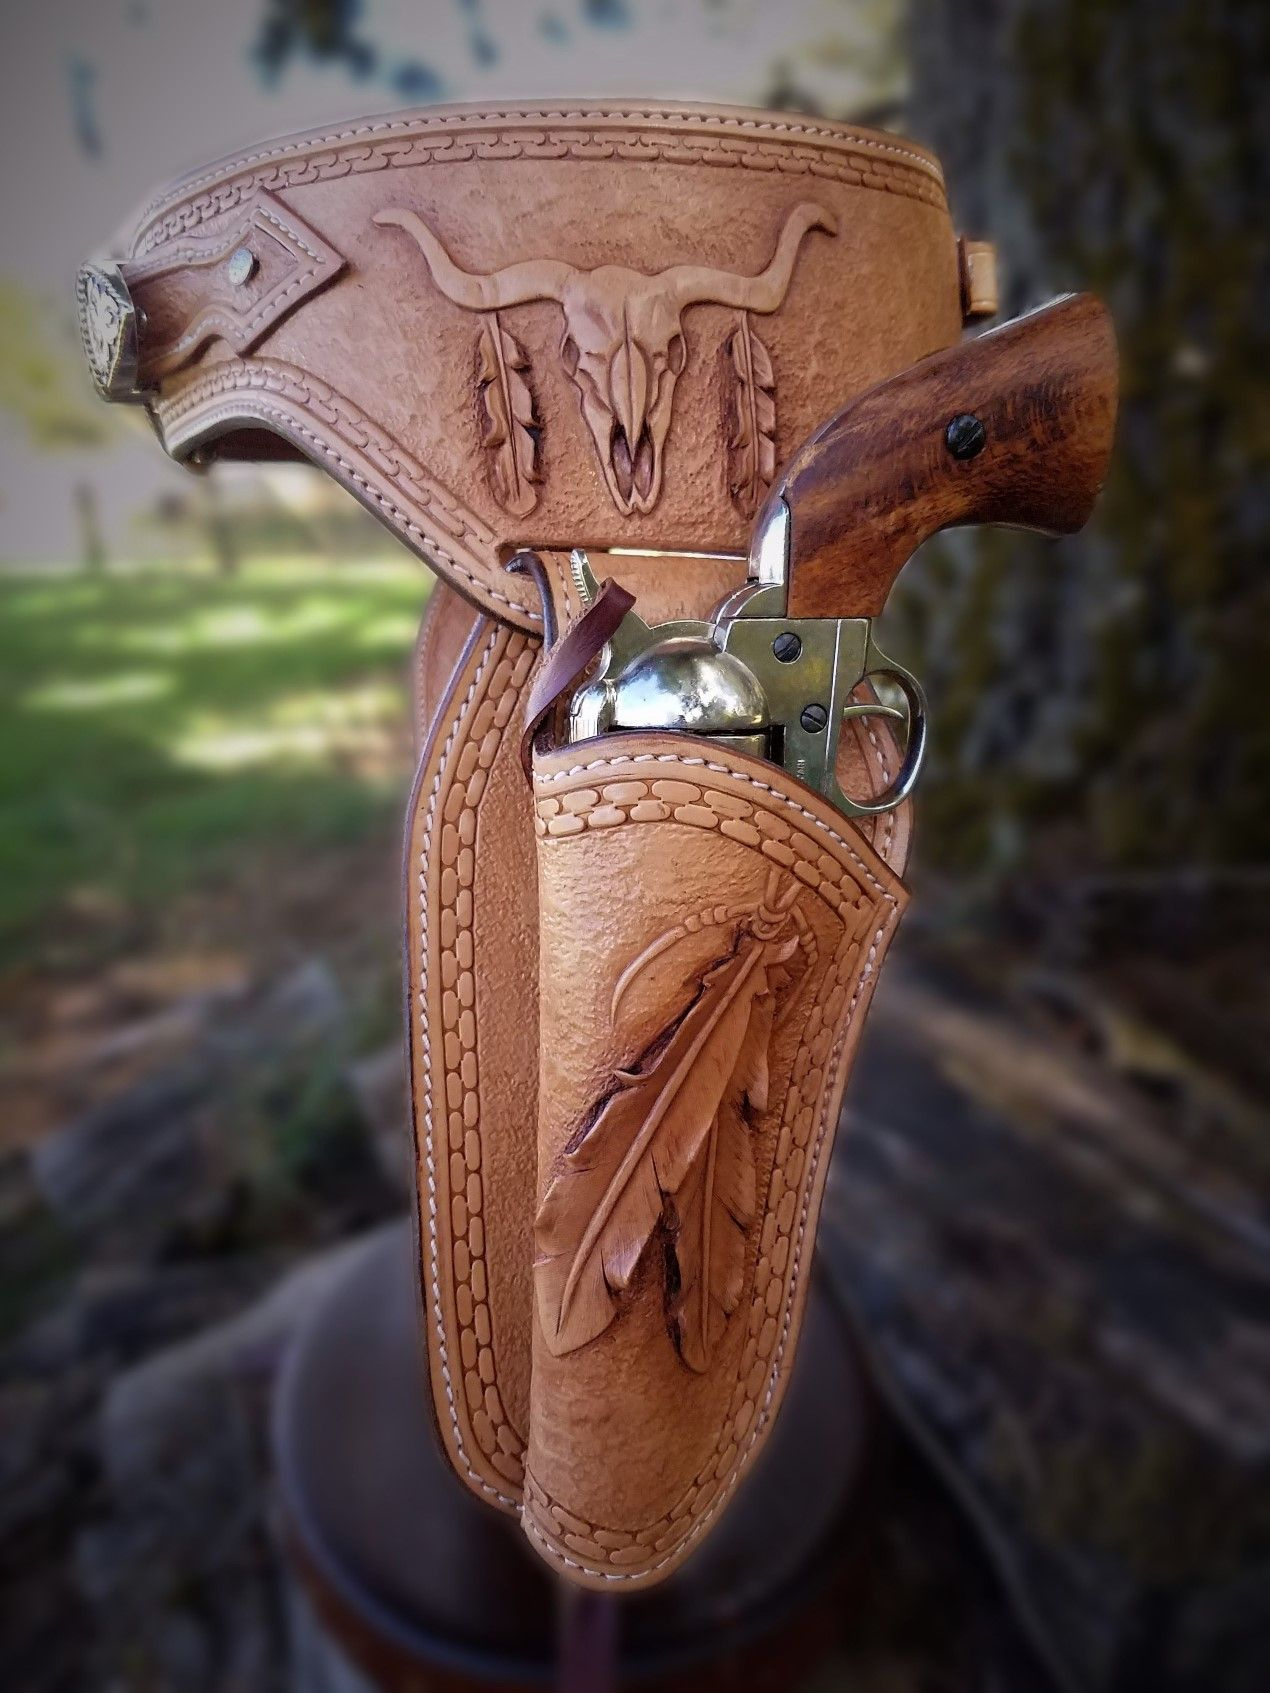 Free Leather Holster Patterns And Tips. Instant Pdf Downloads - Free Printable Holster Patterns